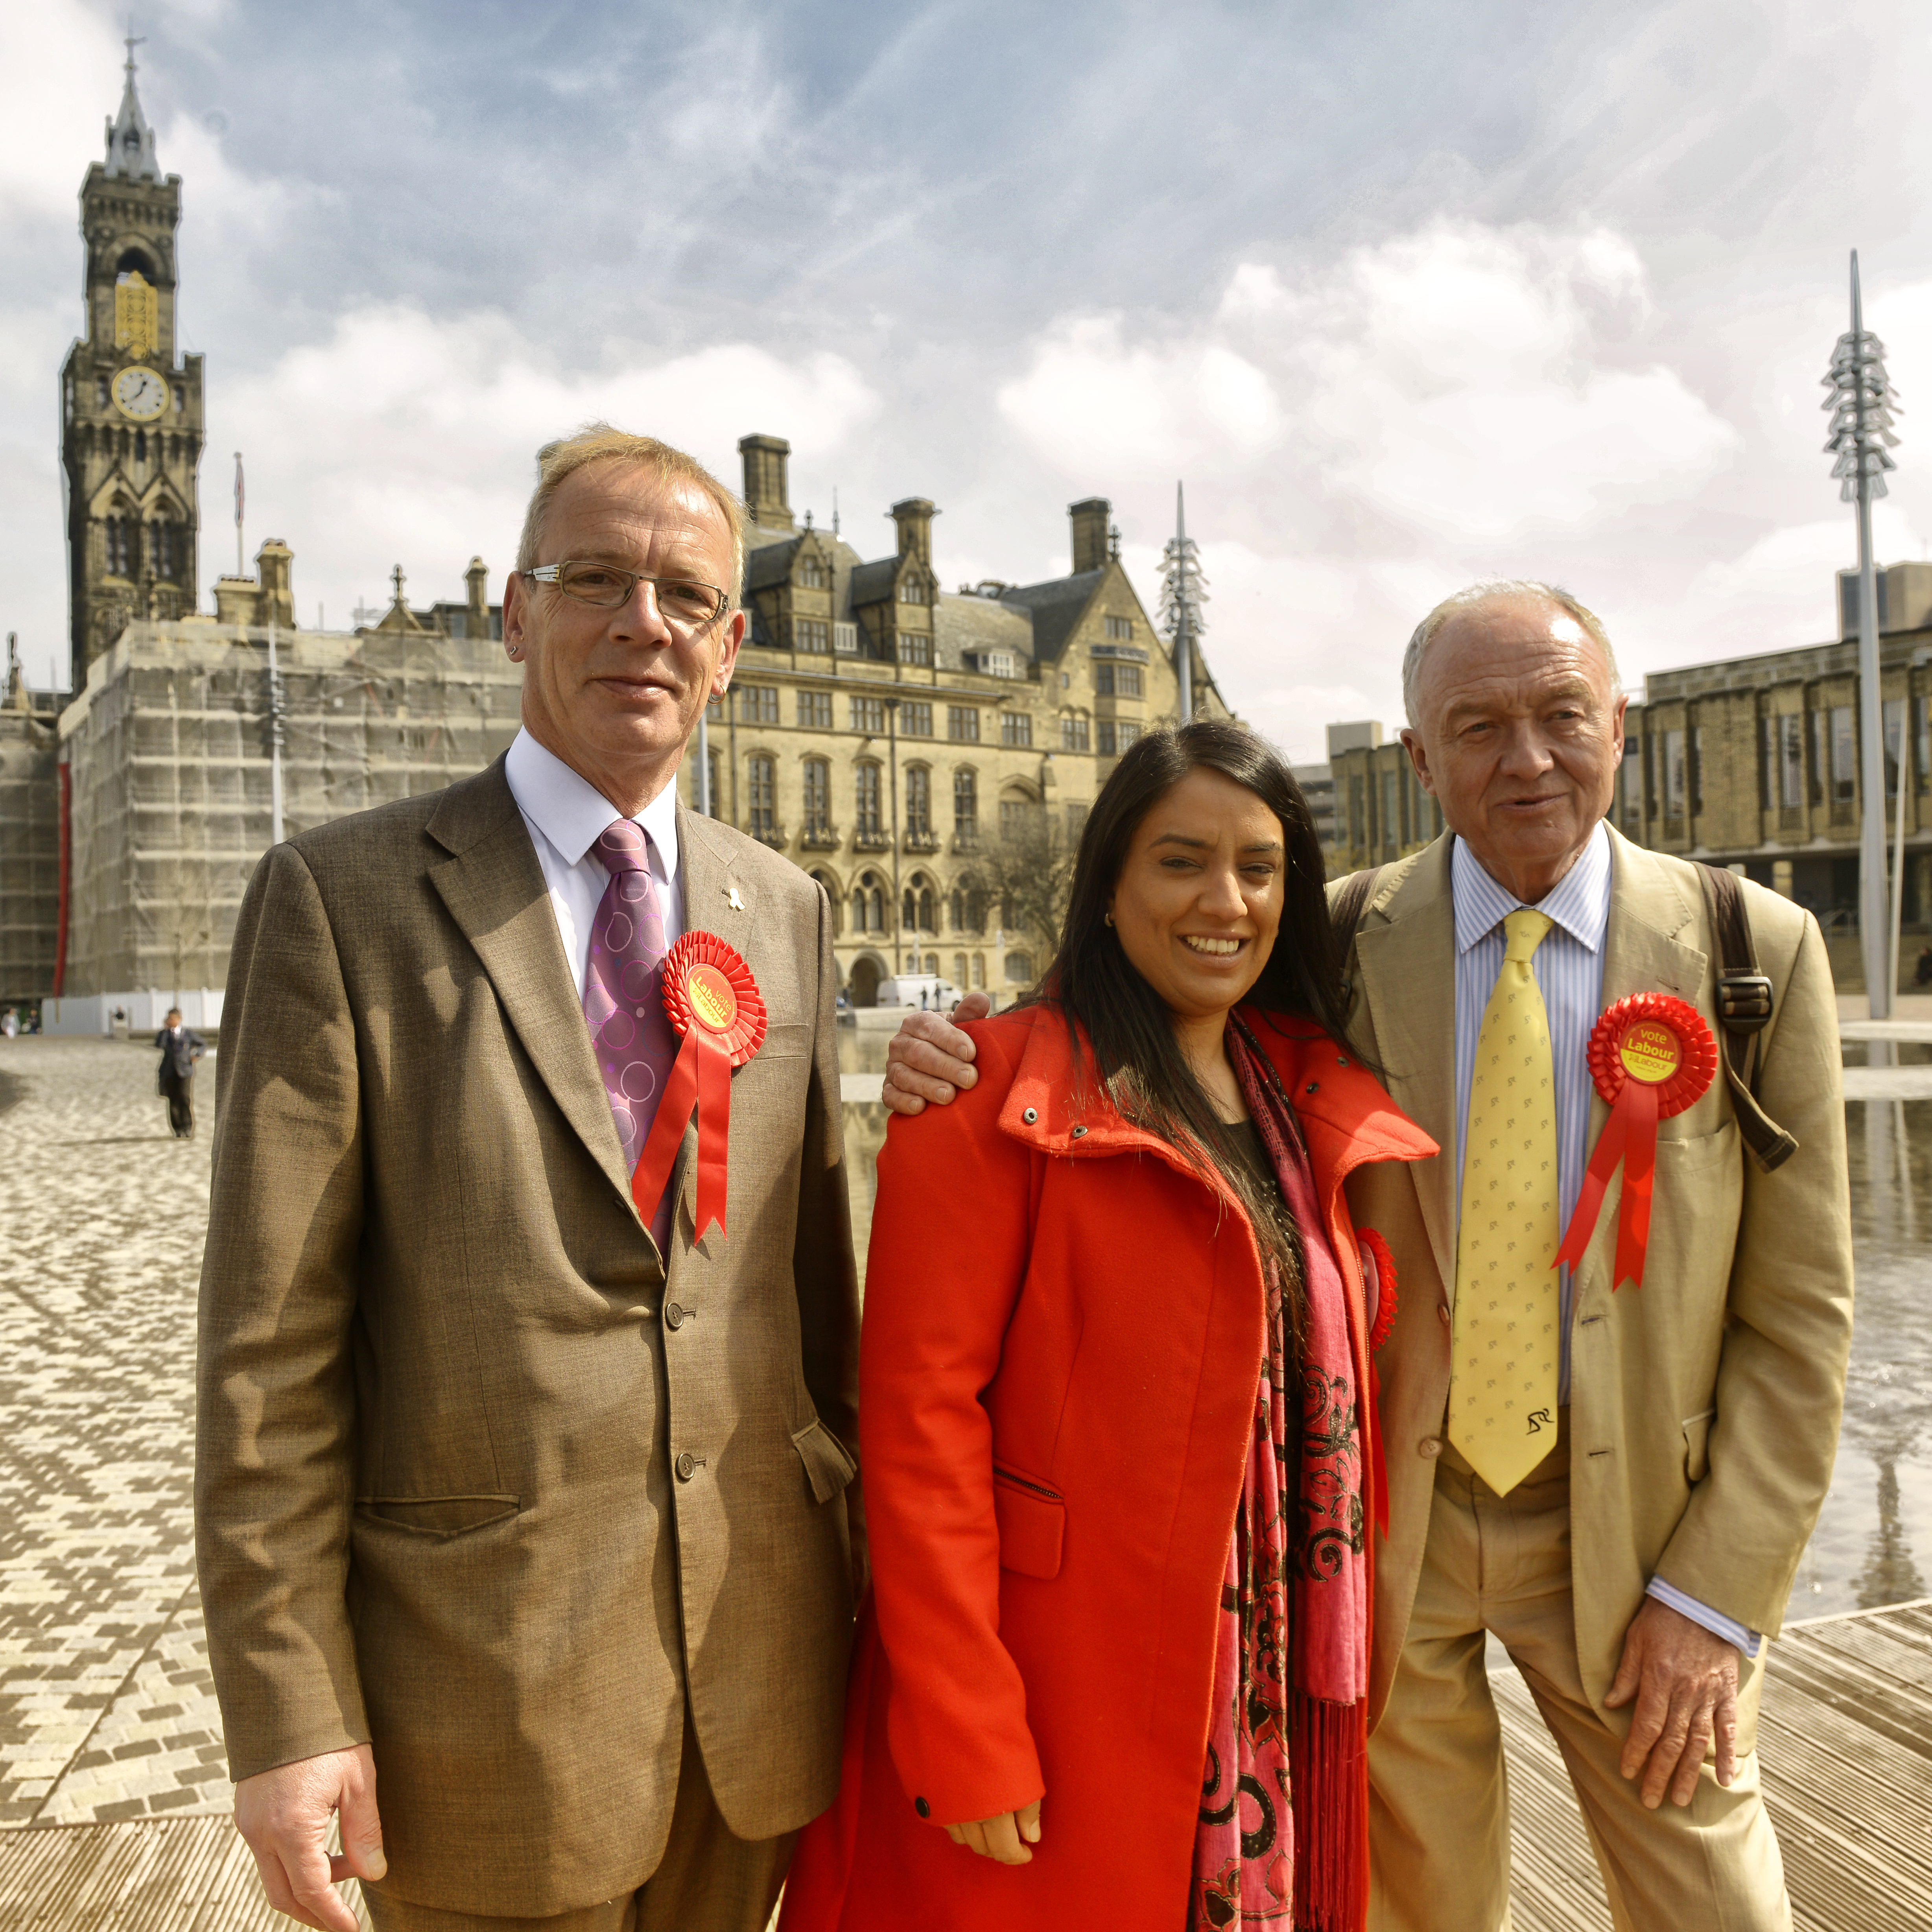 Naz Shah proves that anti-Semitism is still a problem